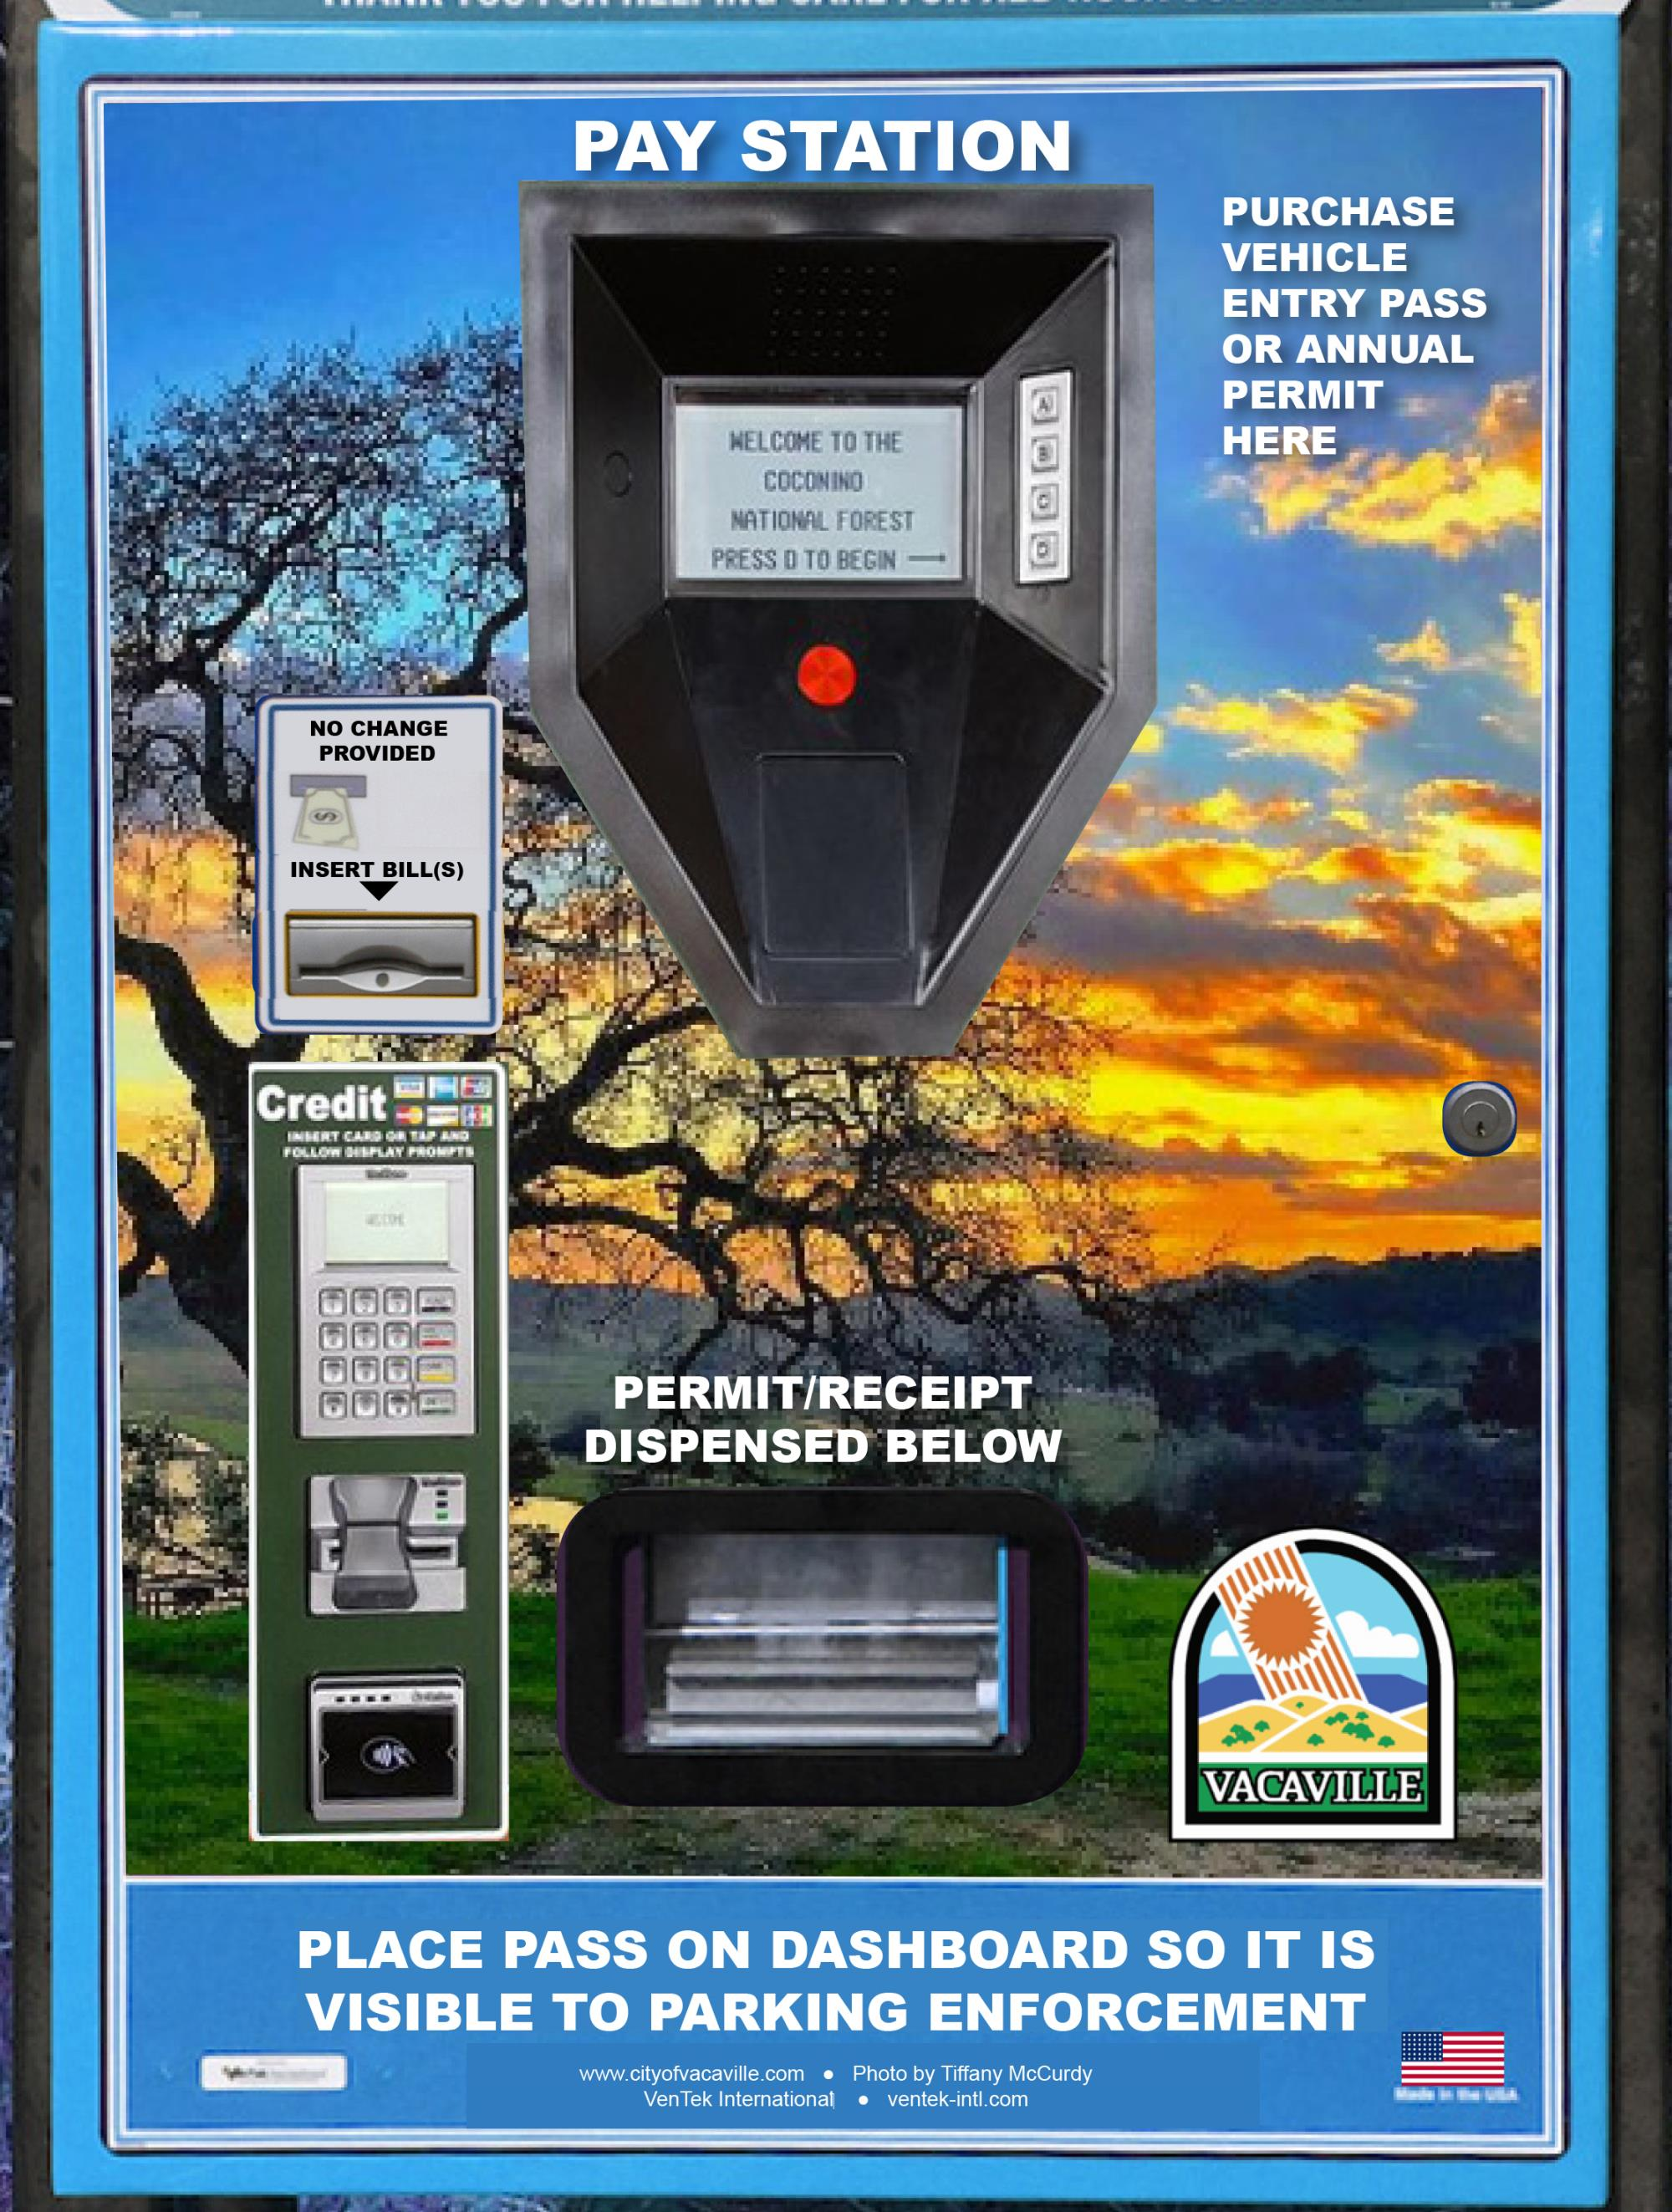 Mock Up Of A Pay Station Ot Be Used At Lagoon Valley Park